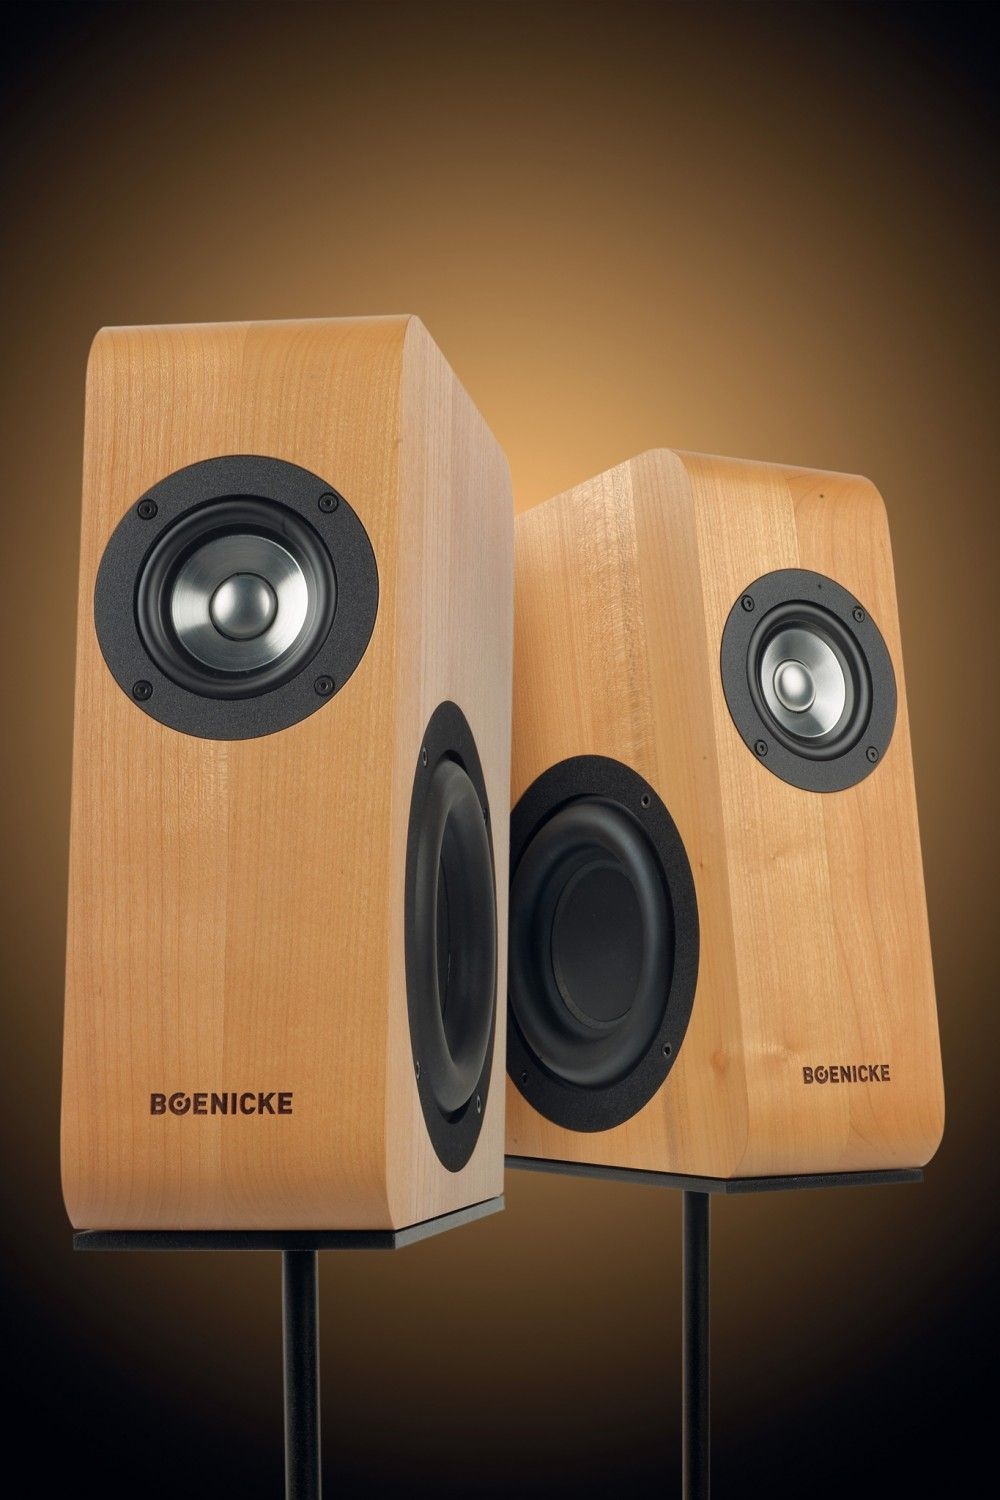 boenicke w5 audire stereo lautsprecher hifi. Black Bedroom Furniture Sets. Home Design Ideas